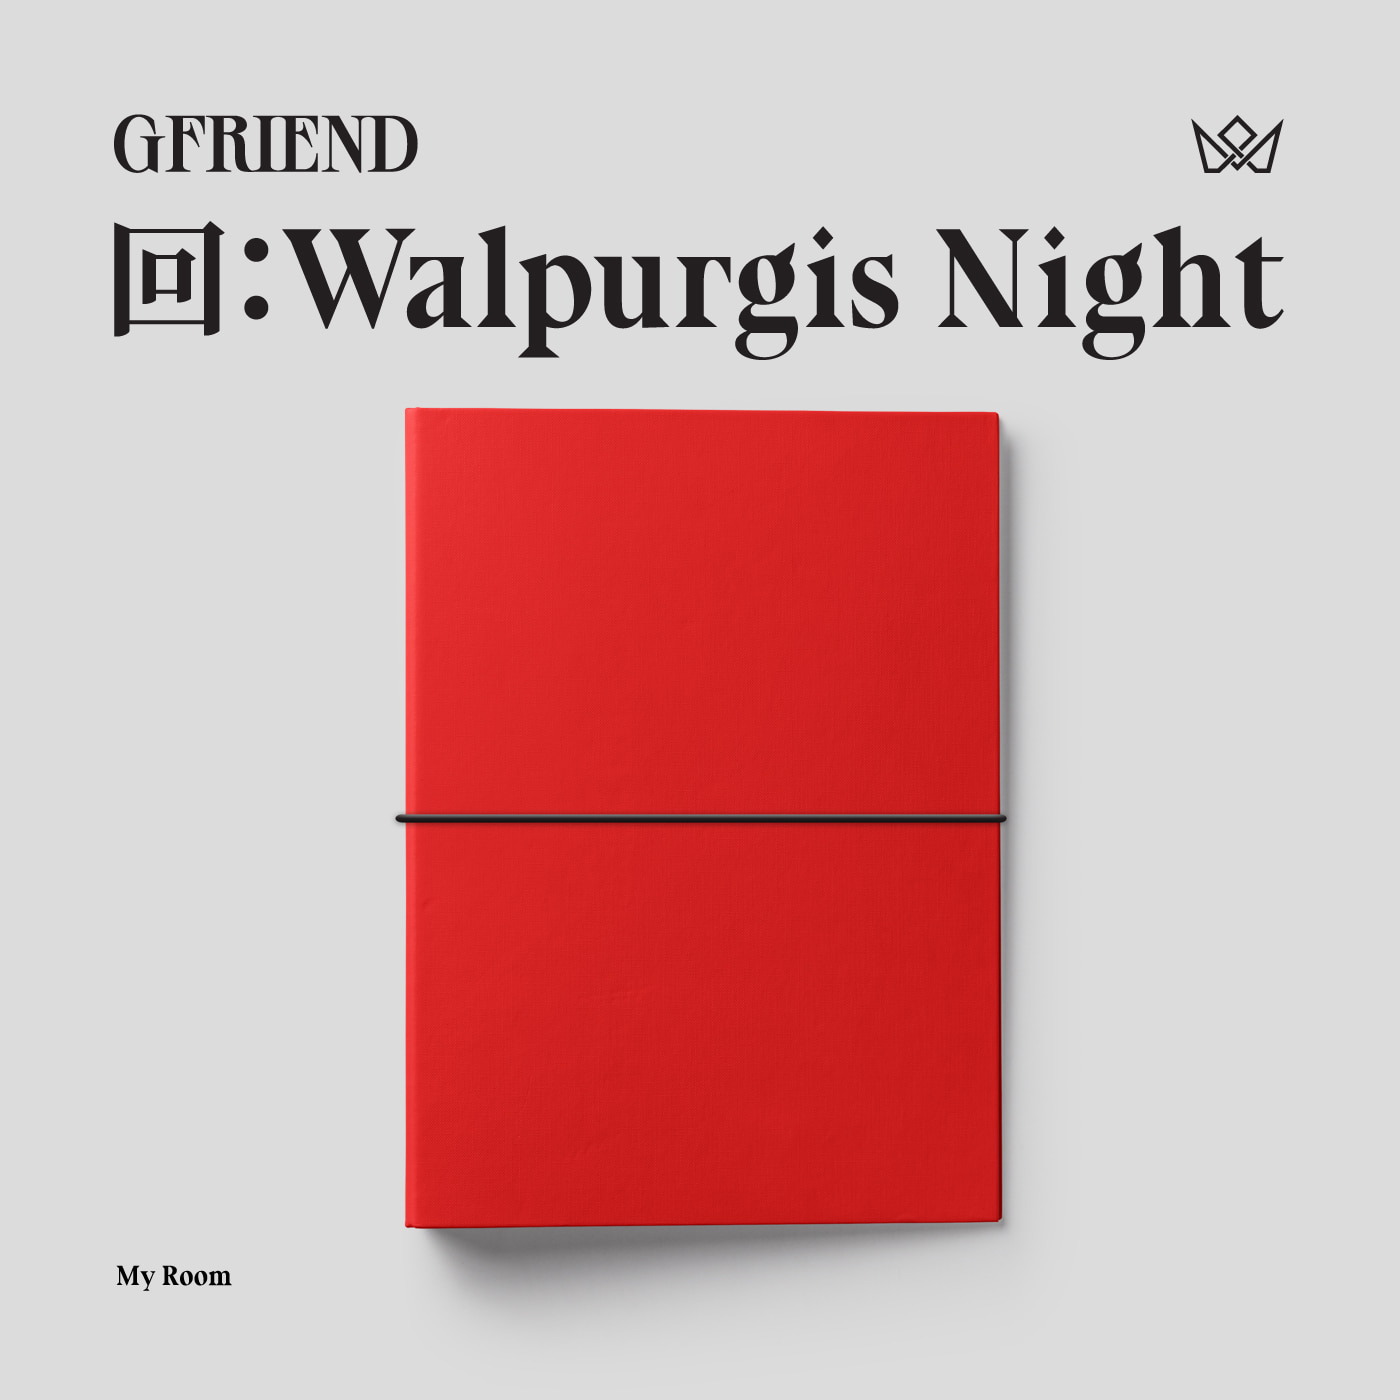 [PRE-ORDER] GFRIEND - Album [回:Walpurgis Night] (My Room Ver.)케이팝스토어(kpop store)